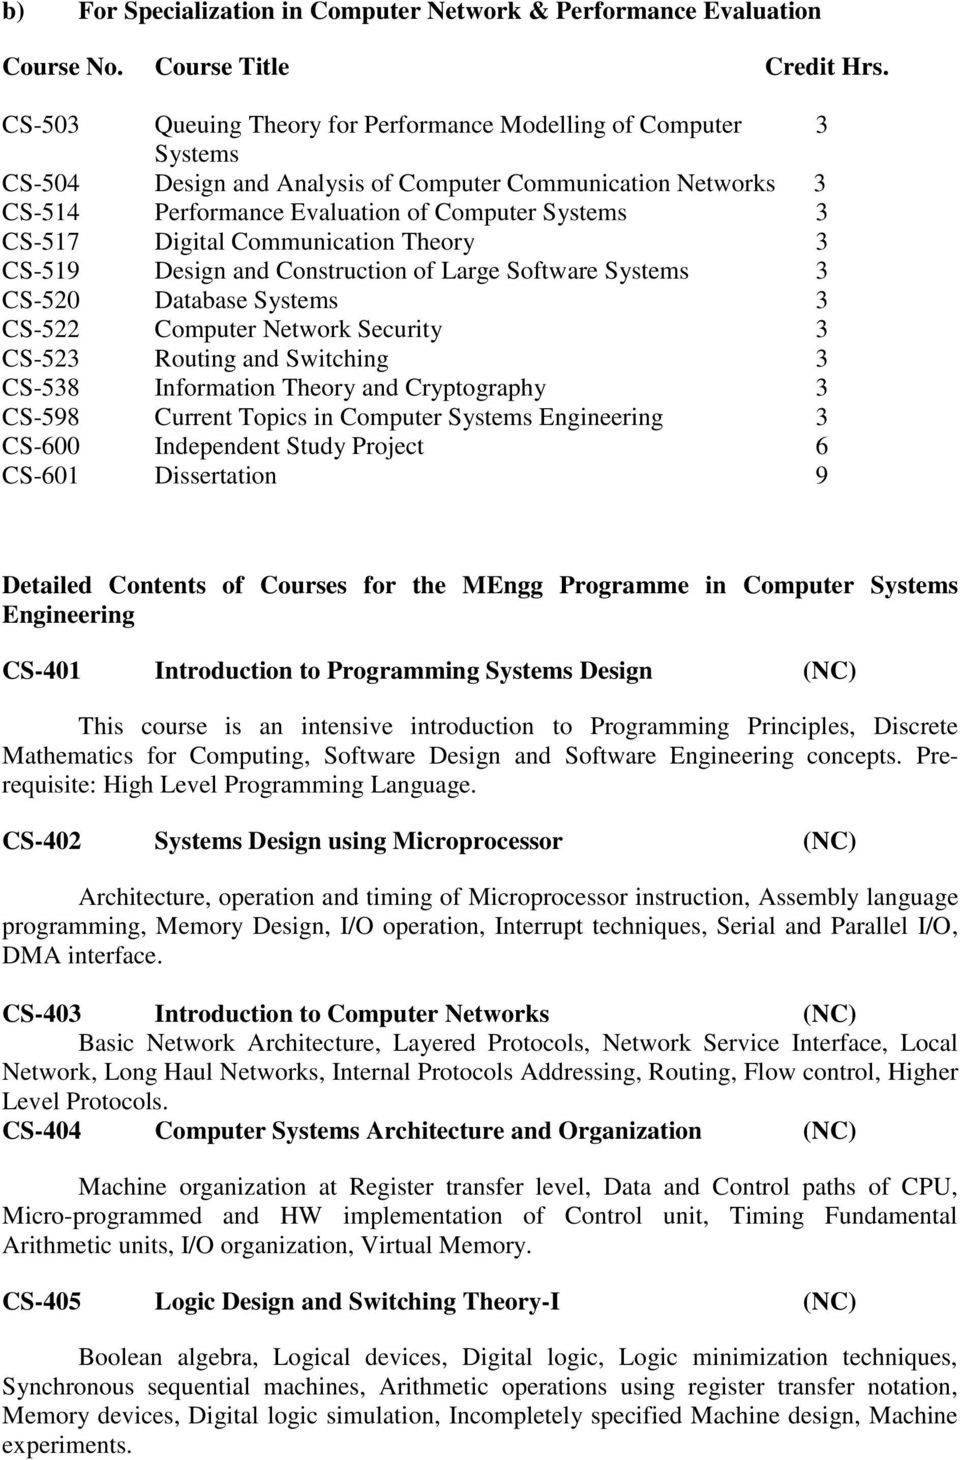 List Of Courses Mengg Computer Systems Pdf Free Download